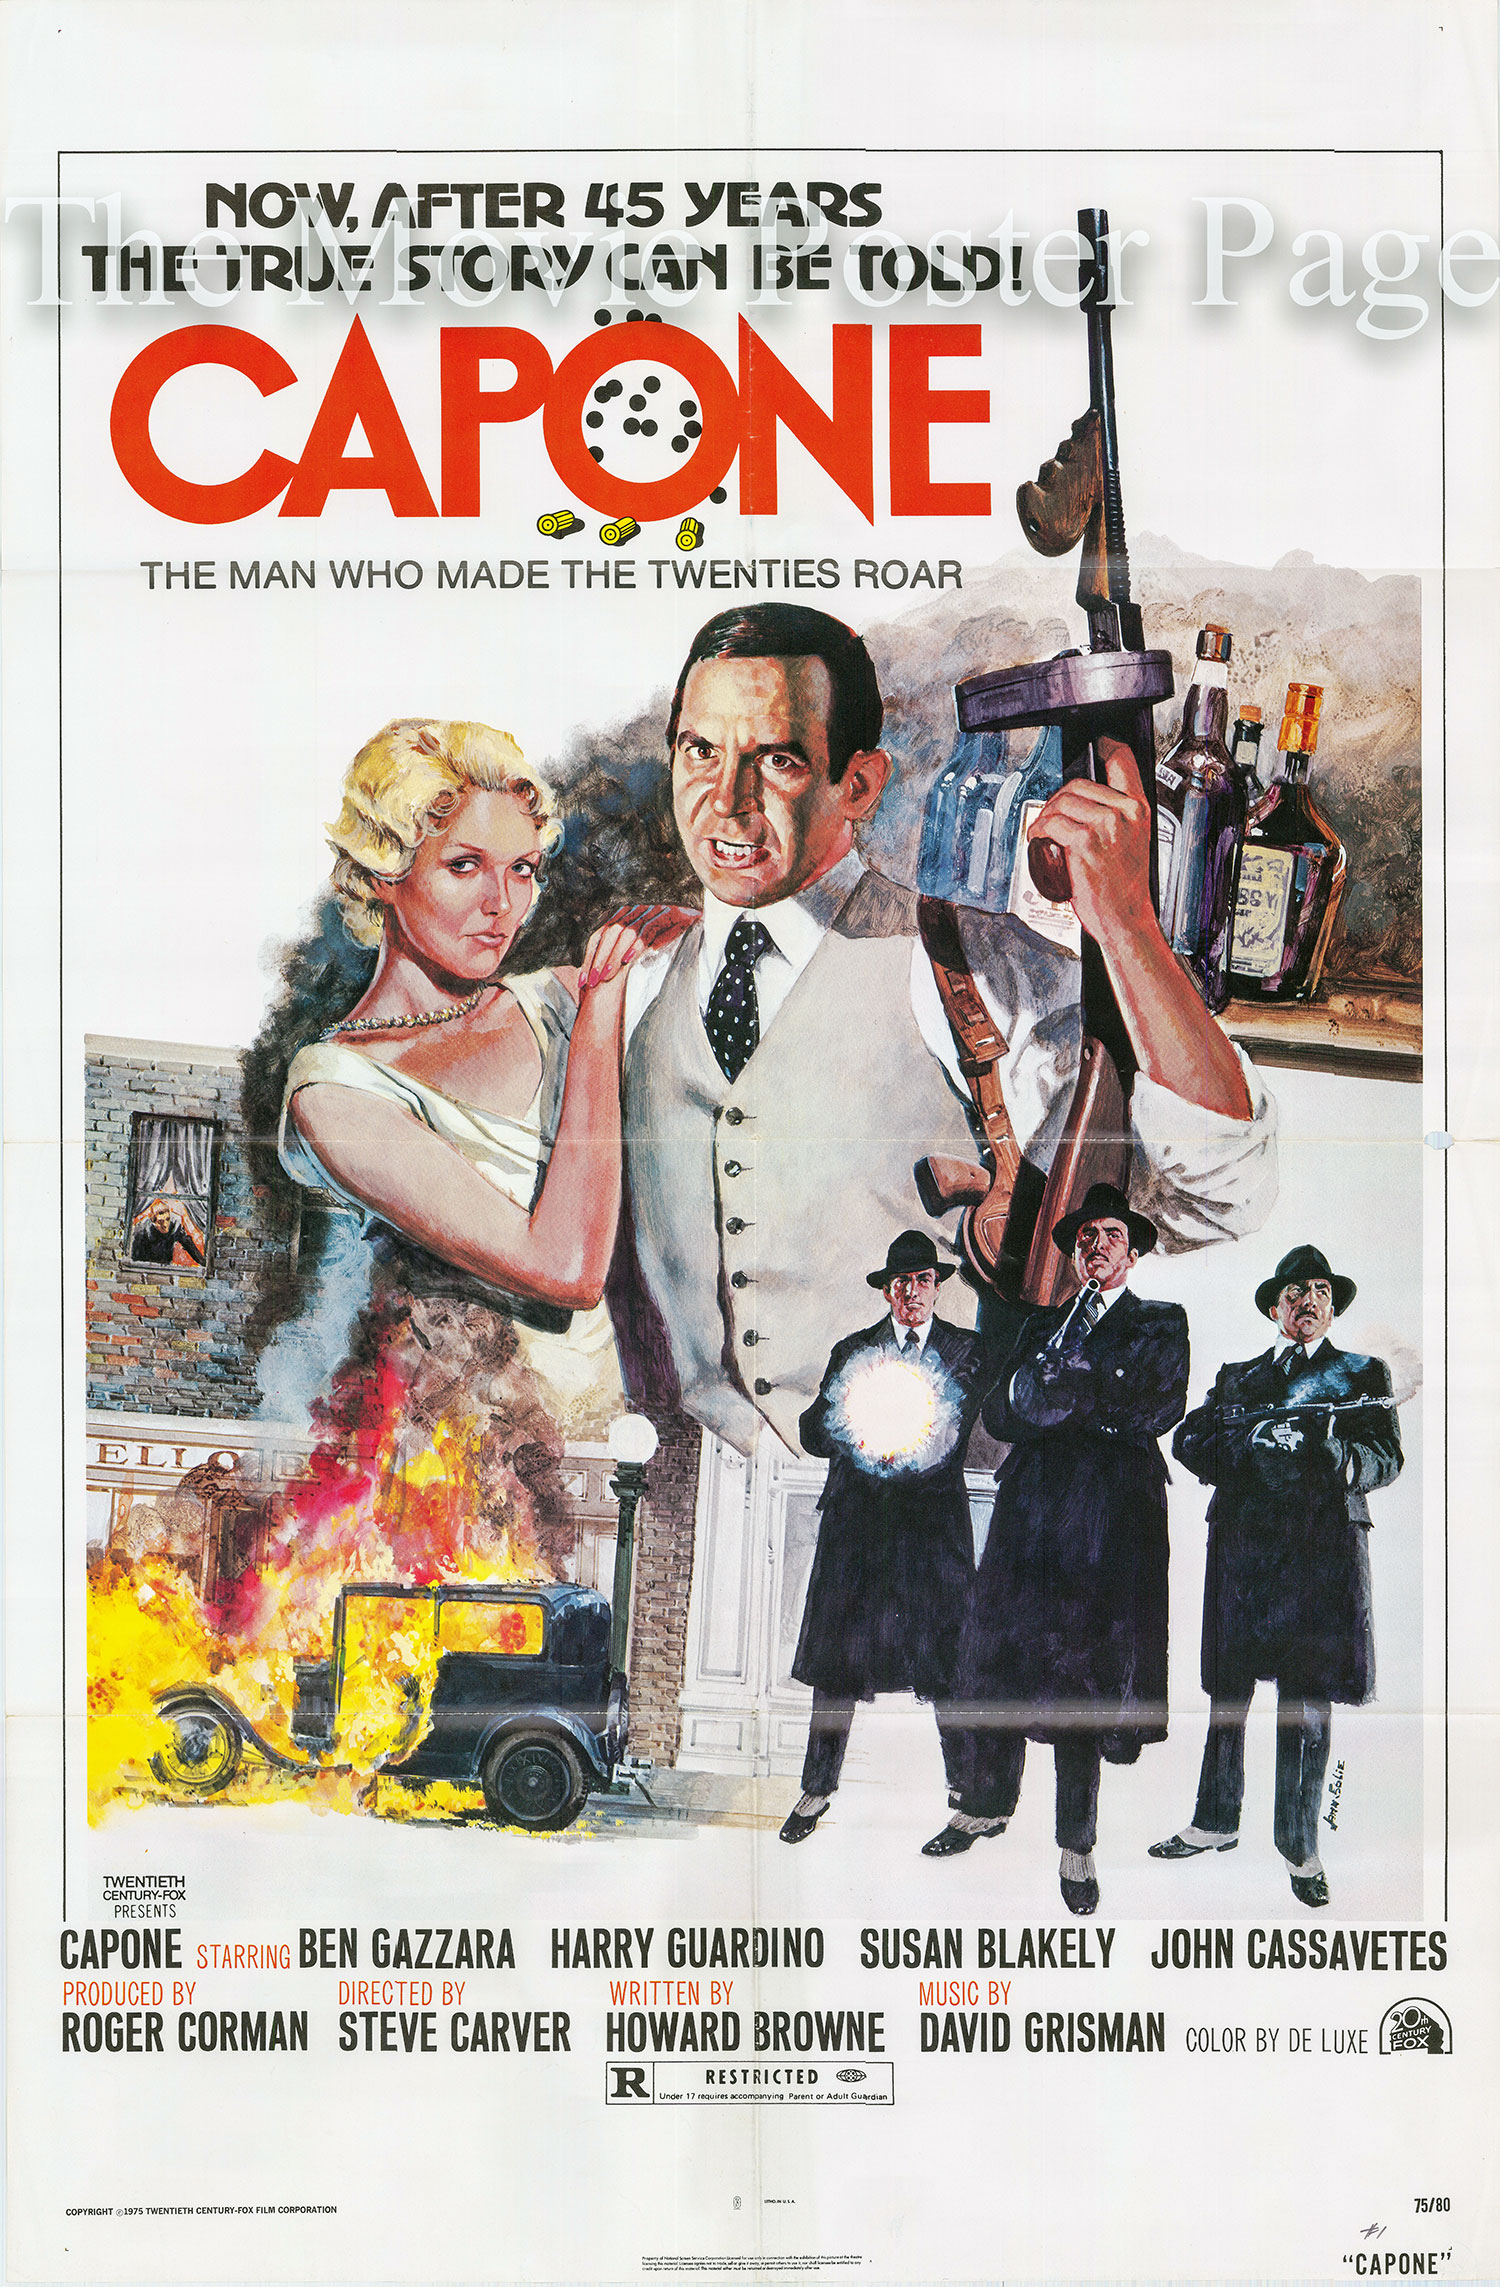 Pictured is a US promotional one-sheet poster for the 1975 Steve Carver film Capone starring Ben Gazzara.